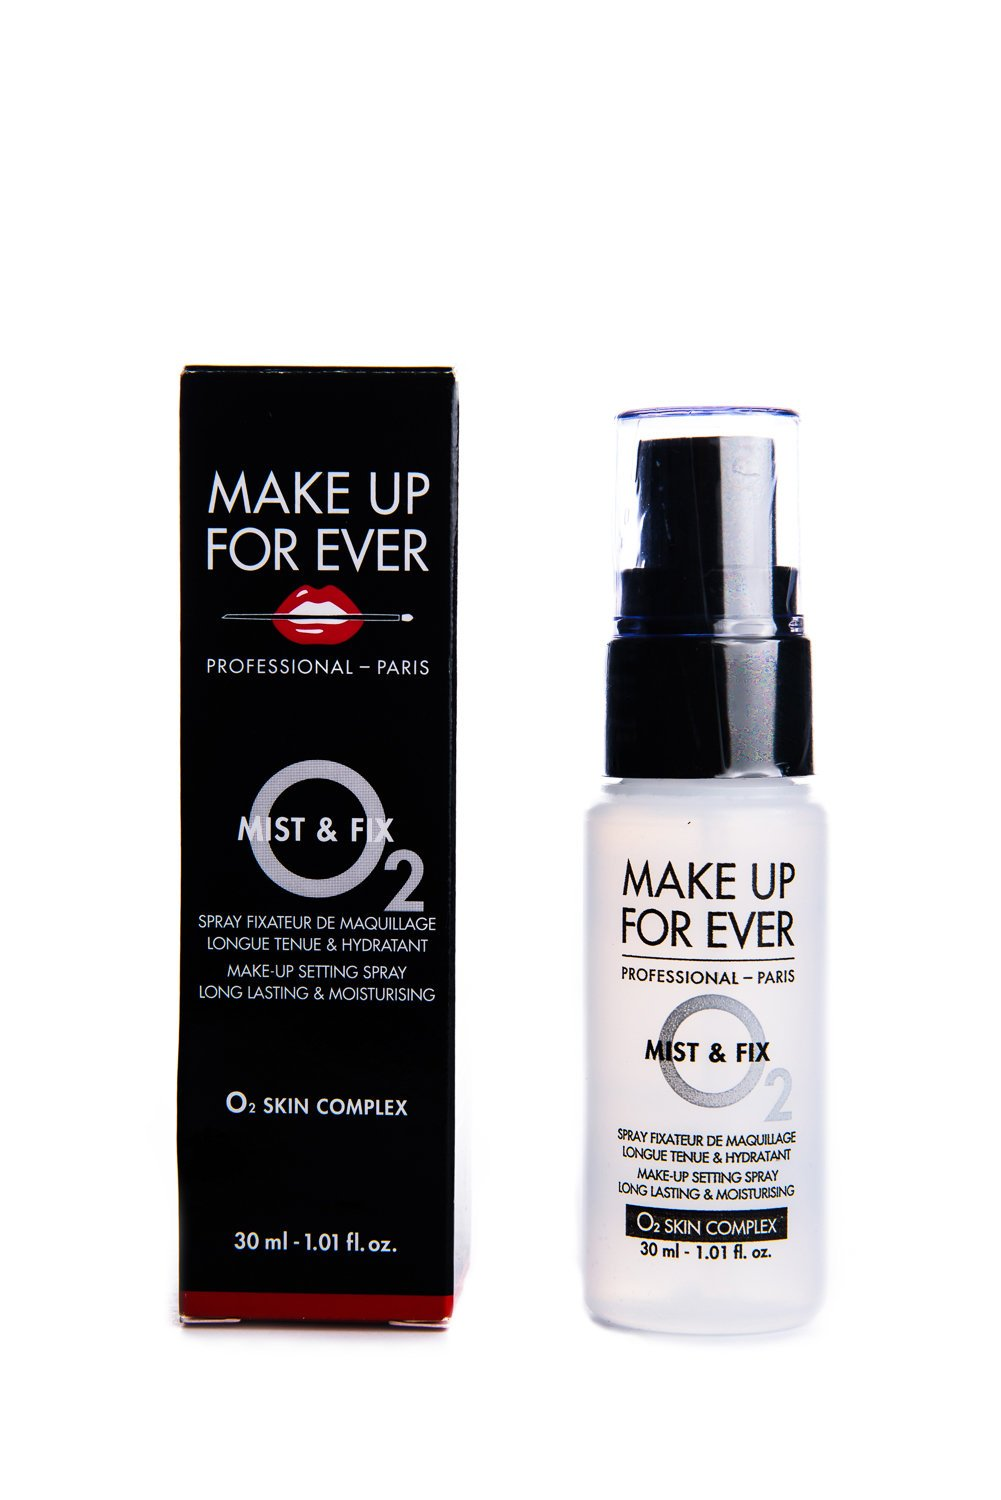 MAKE UP FOR EVER Mist & Fix Make-Up Setting Spray 1.01 fl. oz. Travel Size by Make Up For Ever